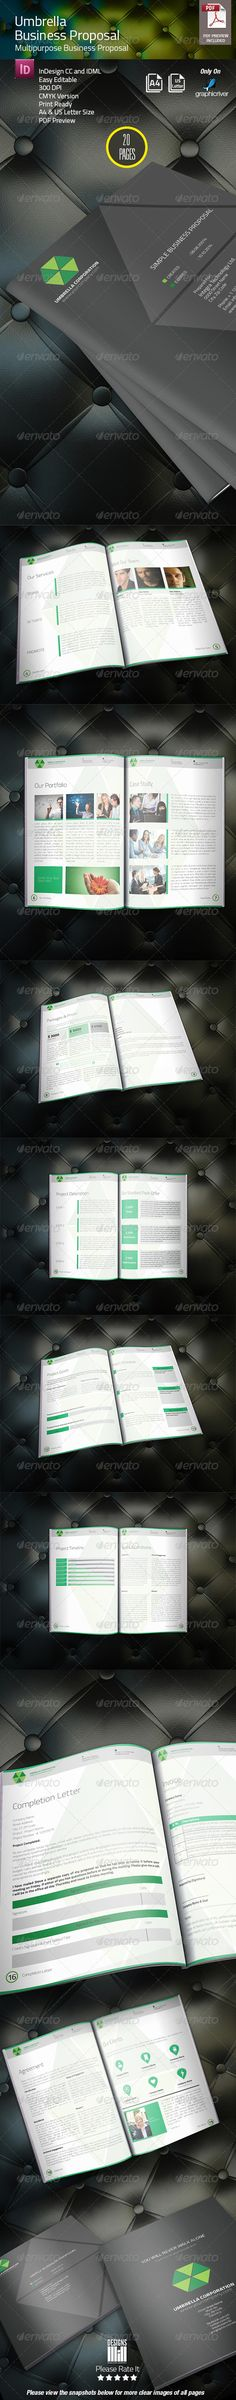 agency proposal template%0A Inbound Marketing Proposal   Marketing proposal  Proposal templates and  Business proposal